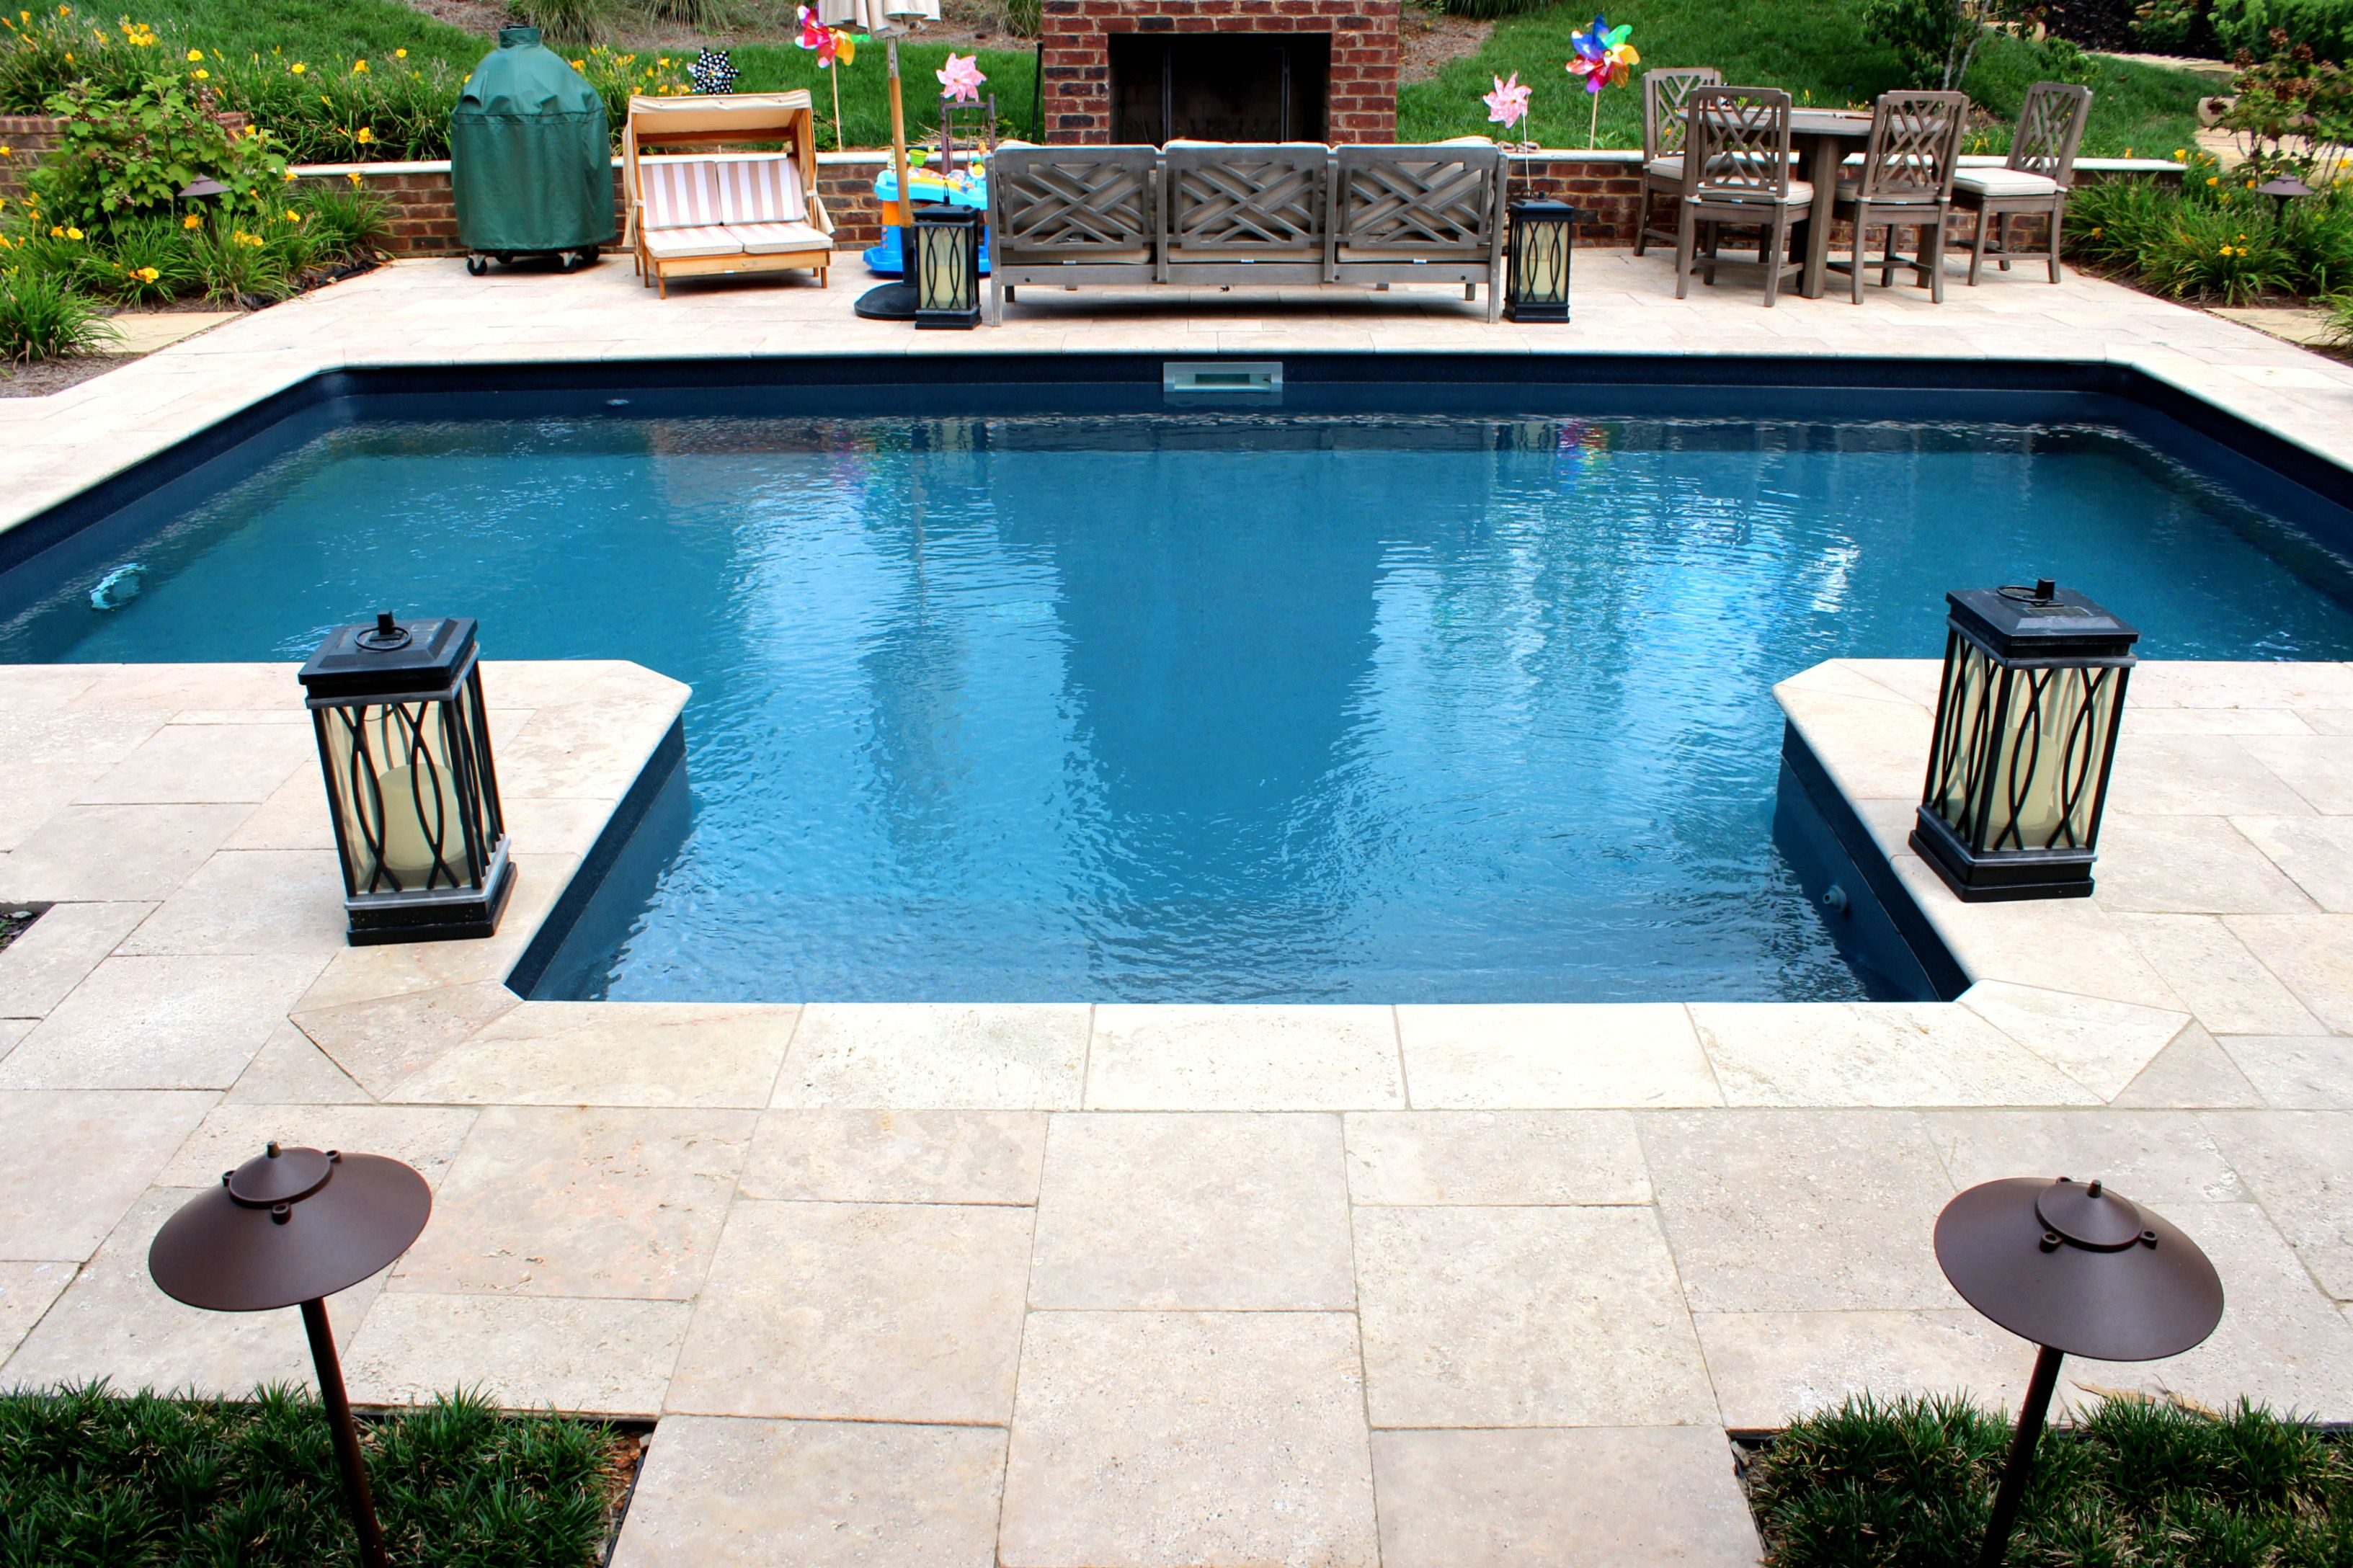 Simple Vinyl Pool With Deck Jets And Entry Vinyl Pool Small Backyard Pools Vinyl Pools Inground